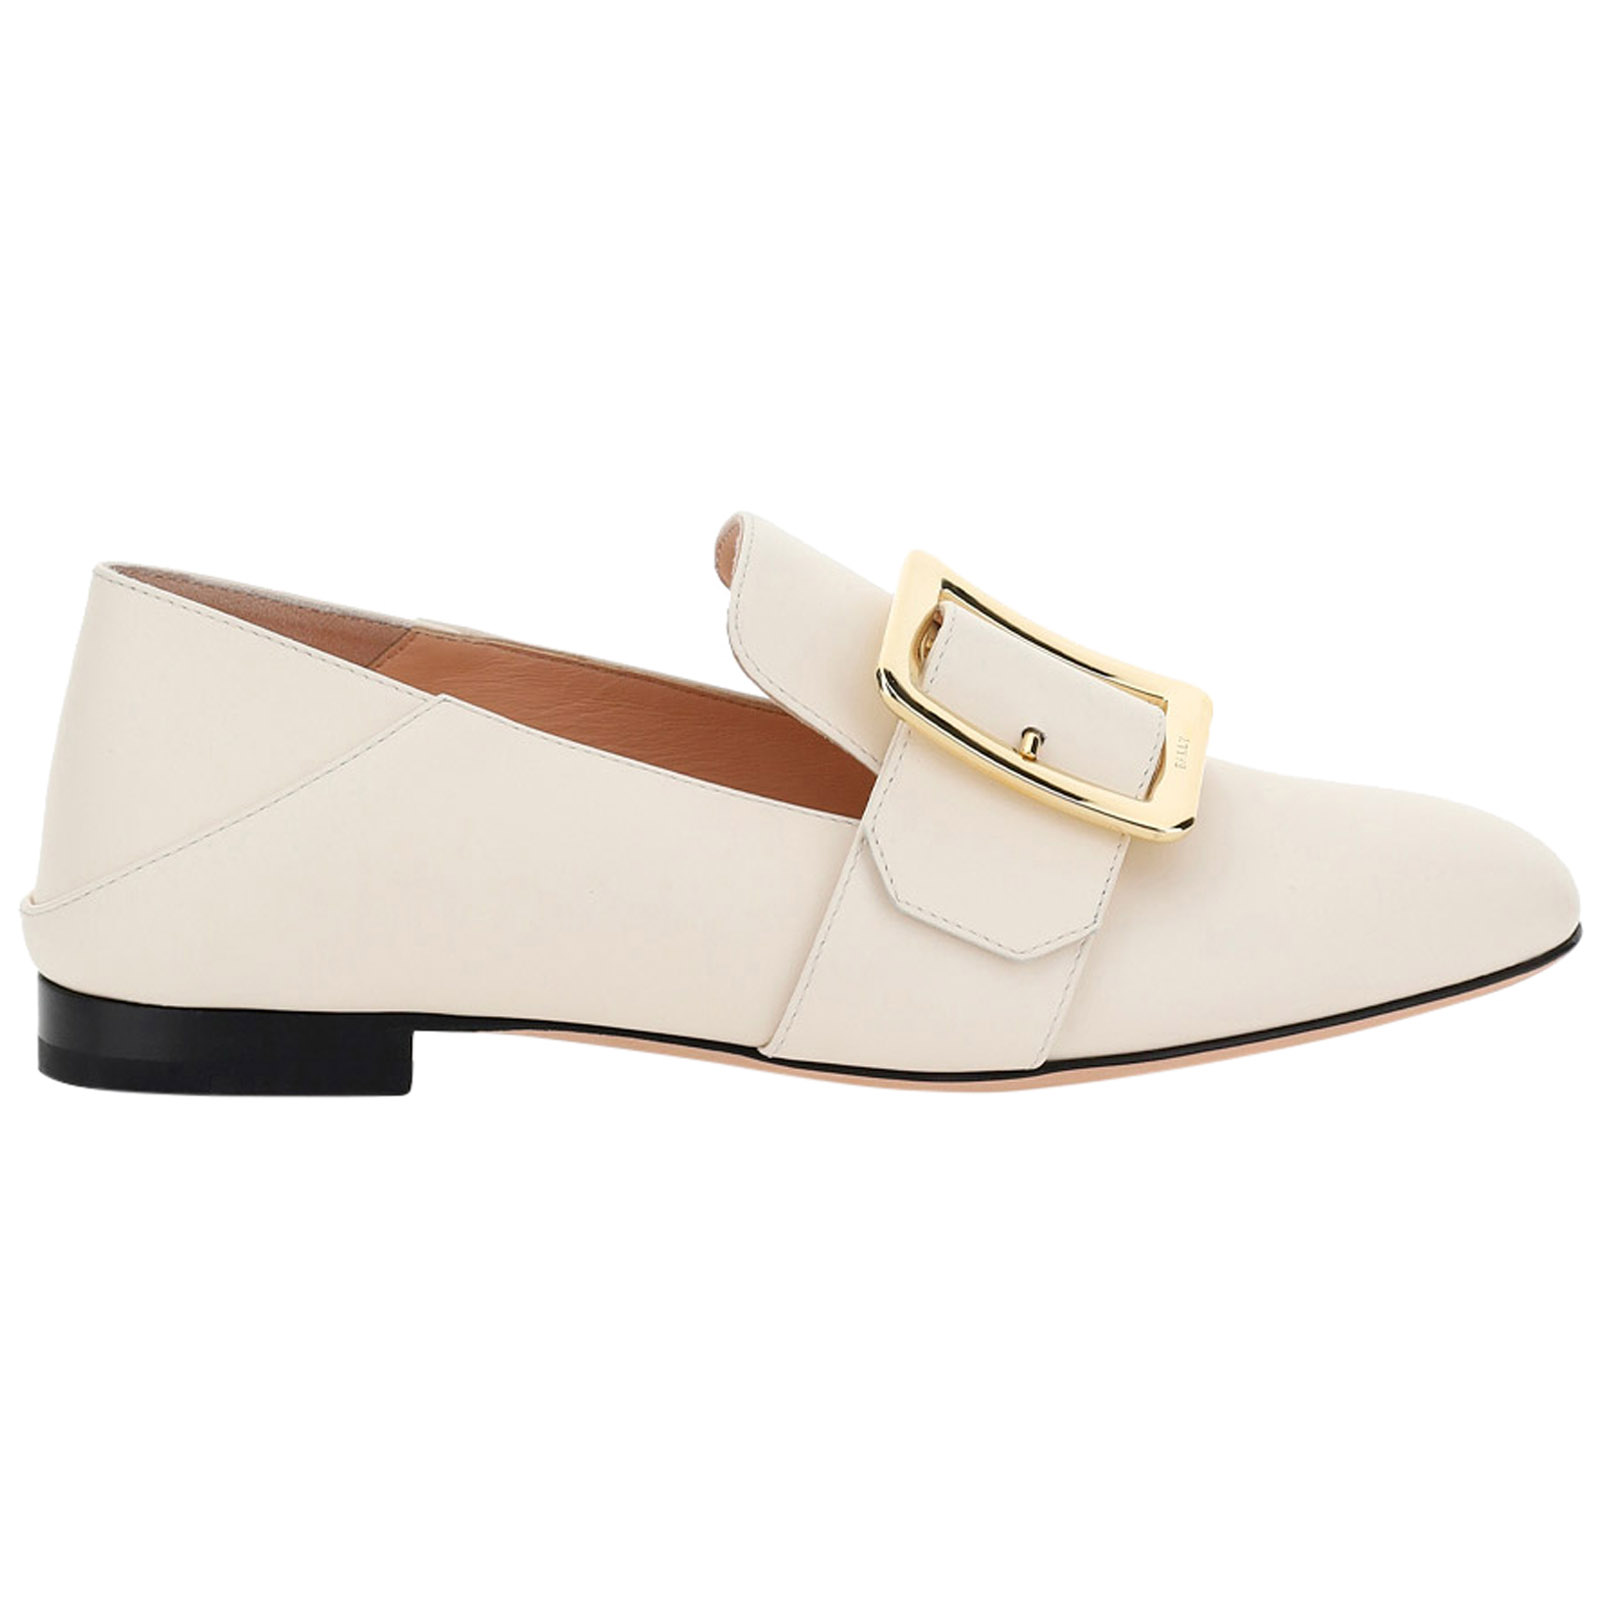 Bally WOMEN'S LEATHER LOAFERS MOCCASINS  JANELLE